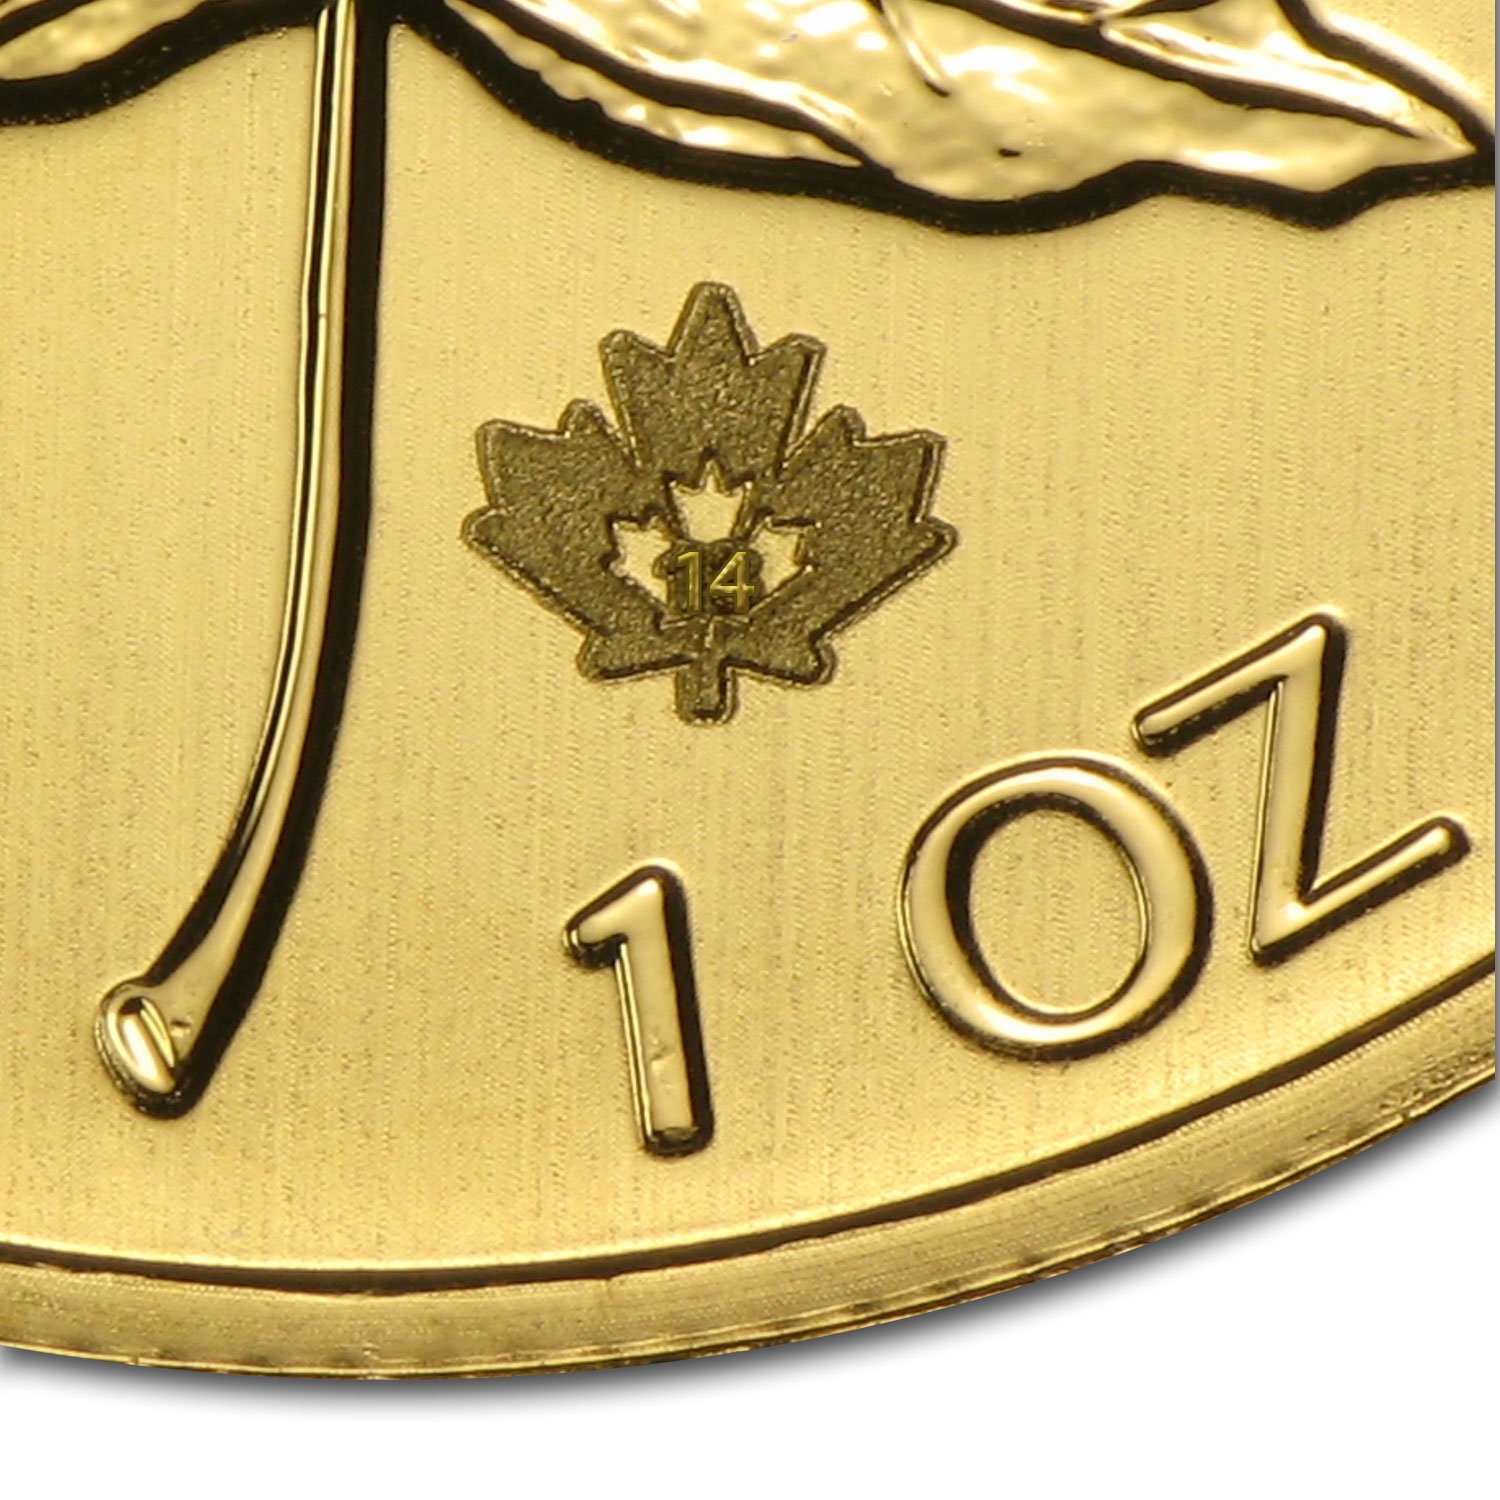 2014 Canada 1 oz Gold Maple Leaf BU